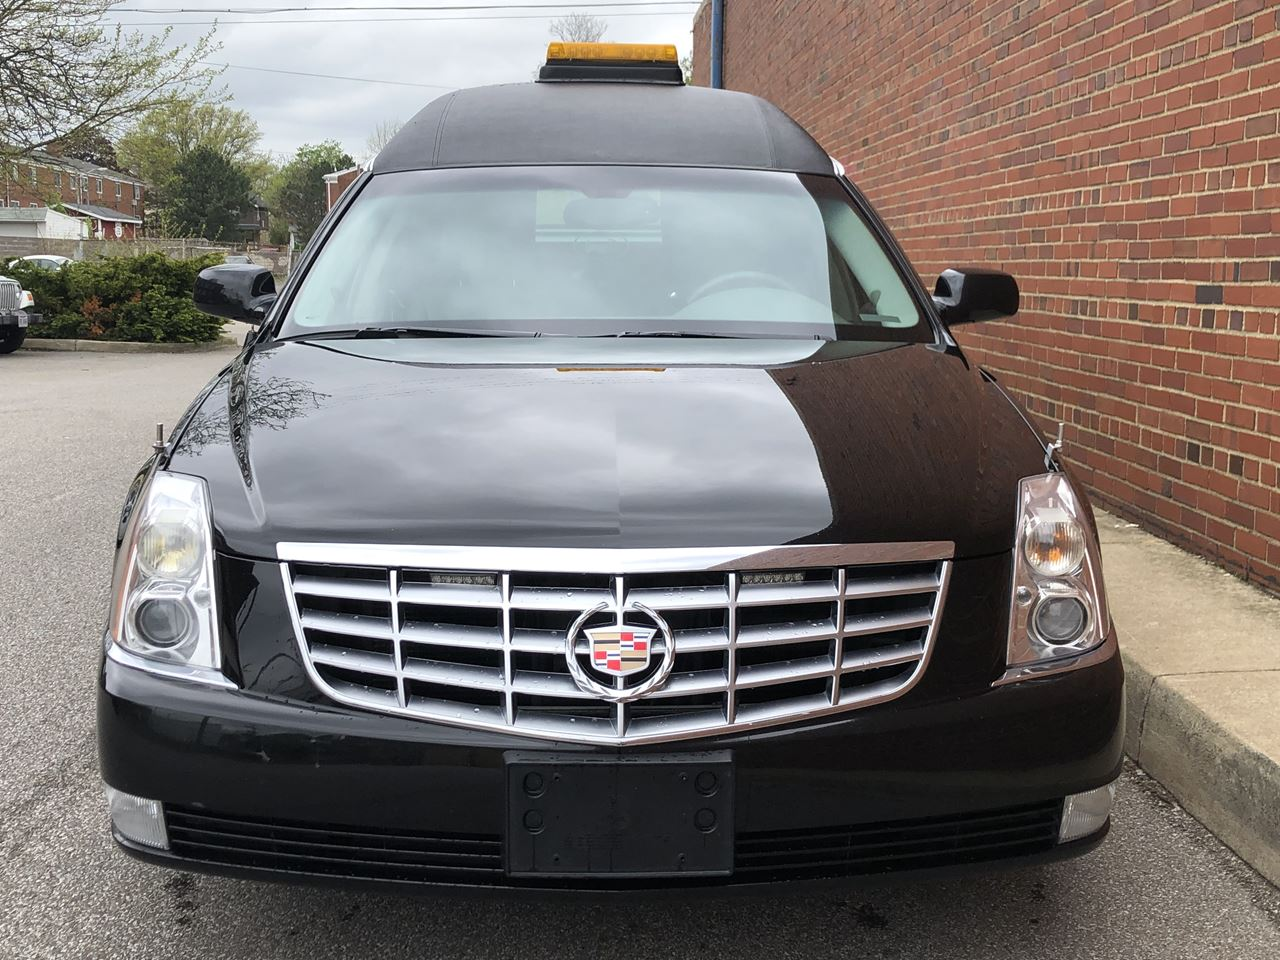 2011 Cadillac Eagle Kingsley Hearse 18 5